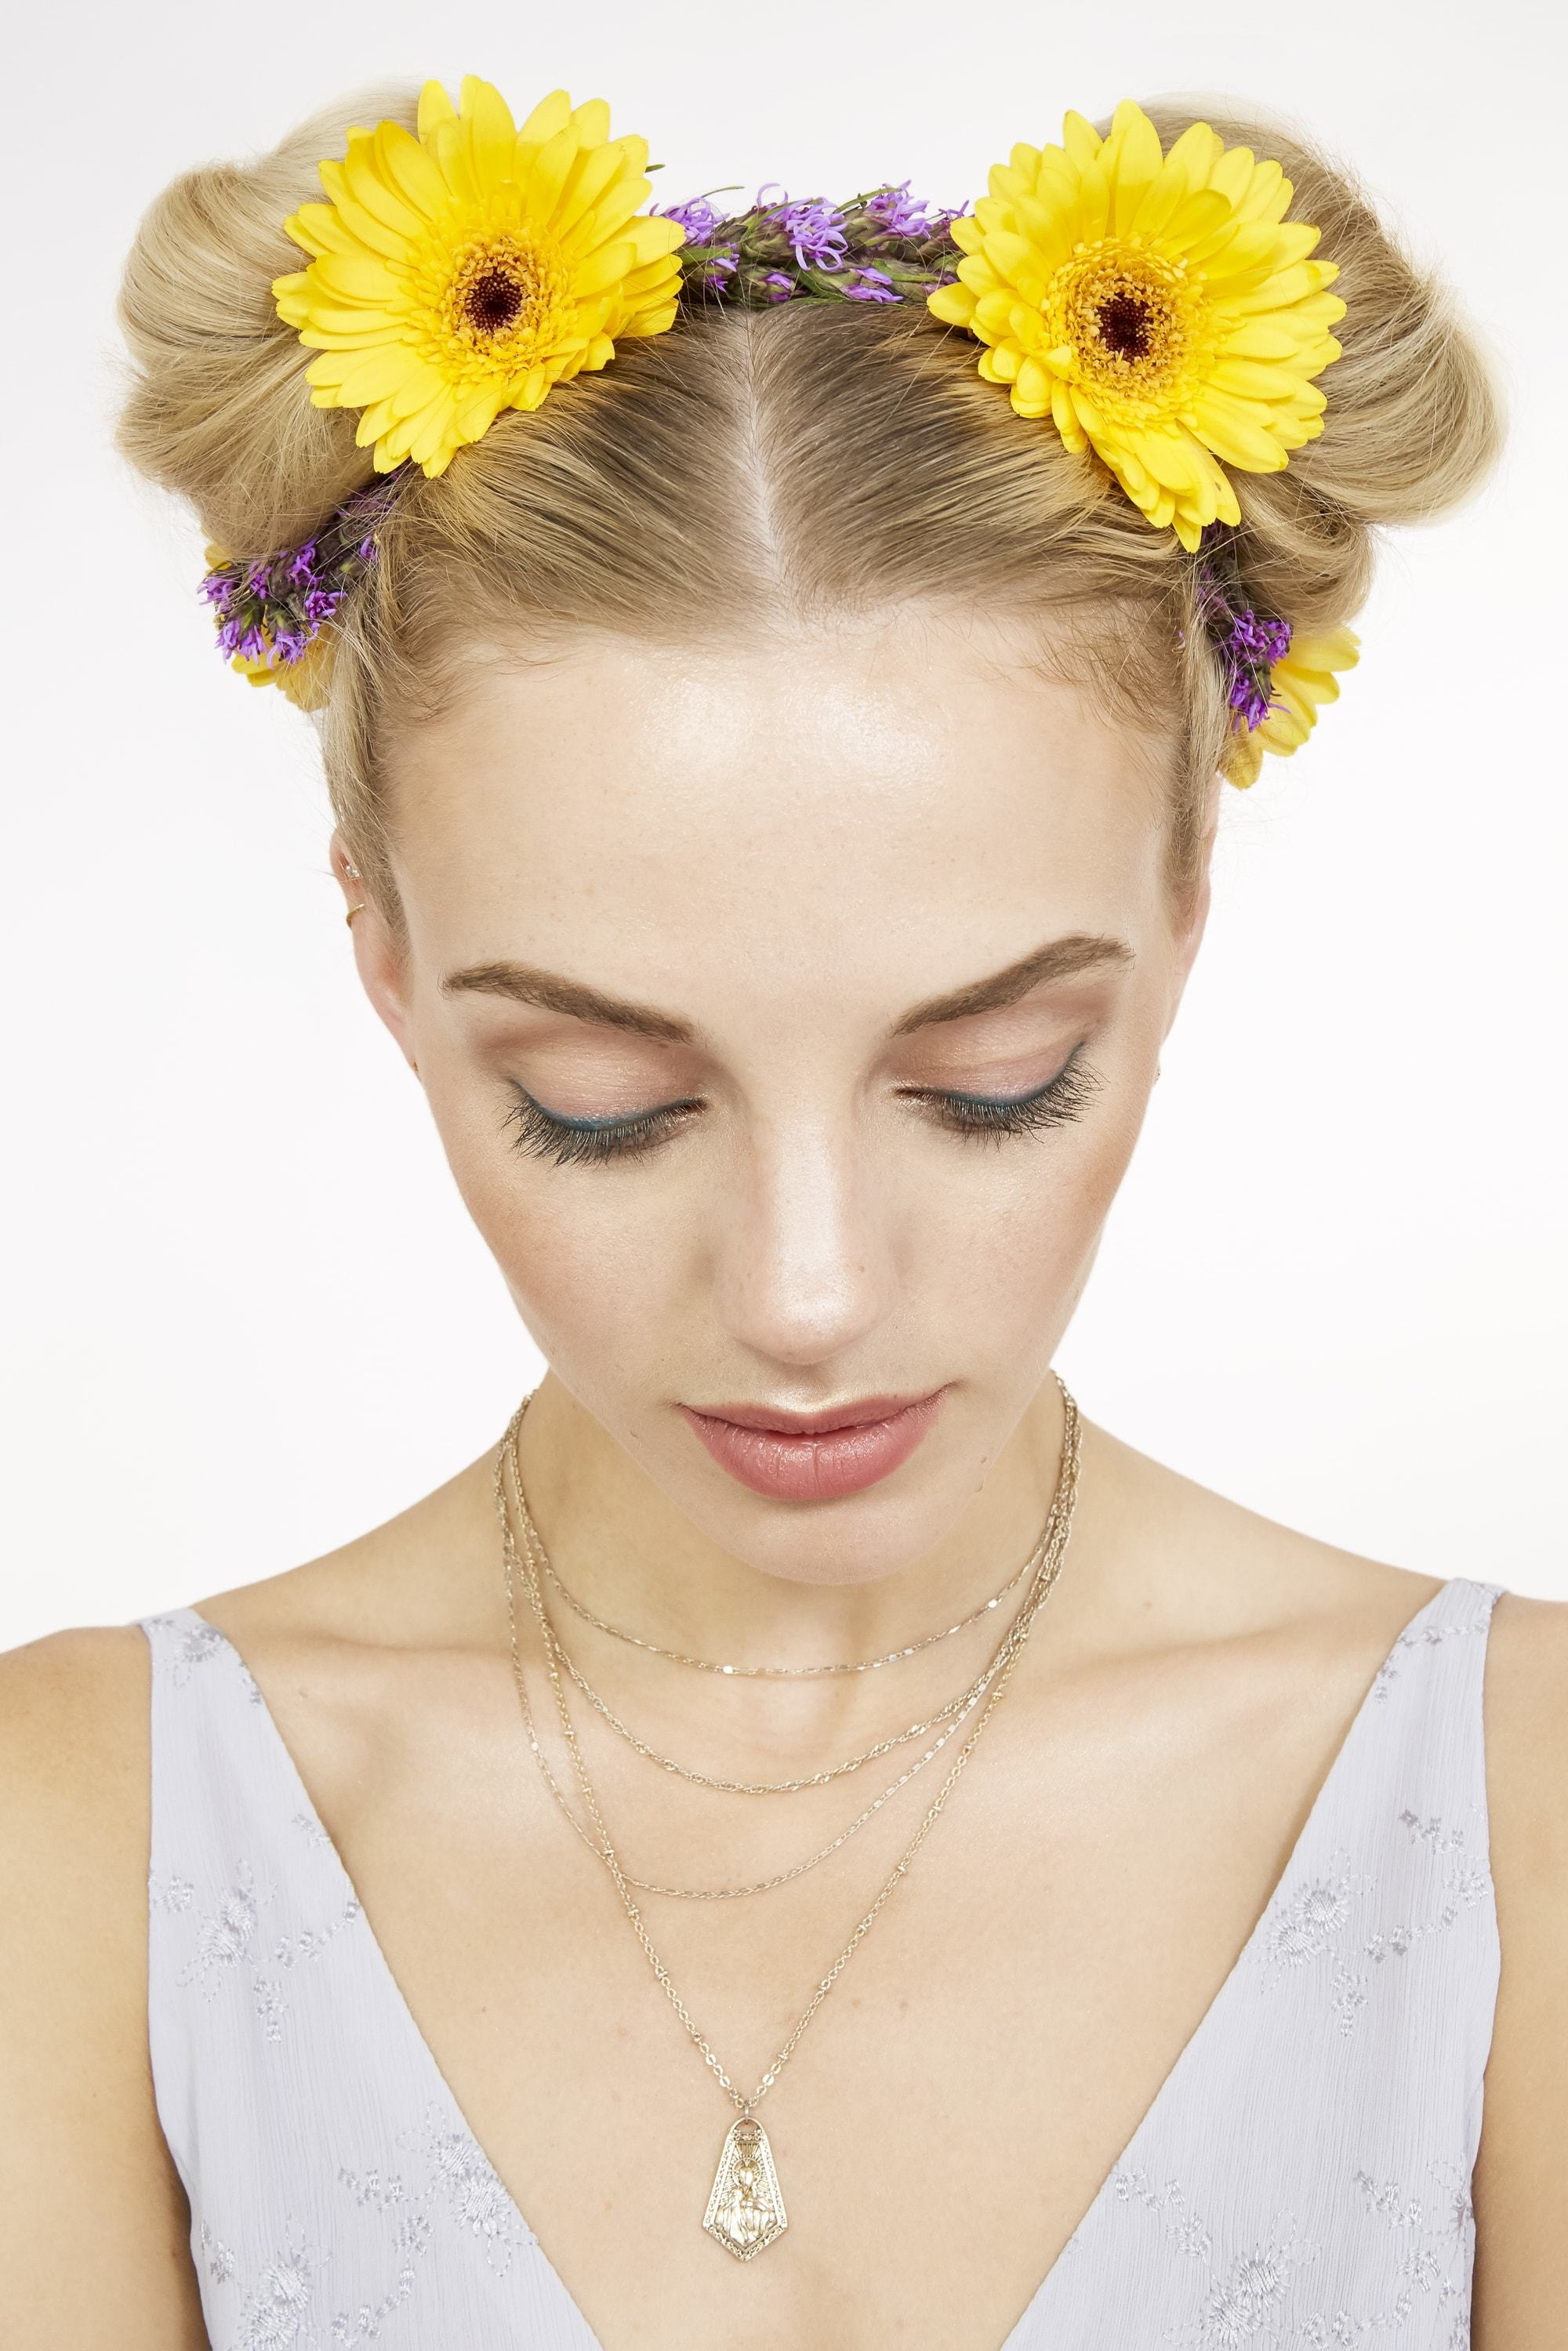 4 cute floral hairstyles to rock this festival season and beyond